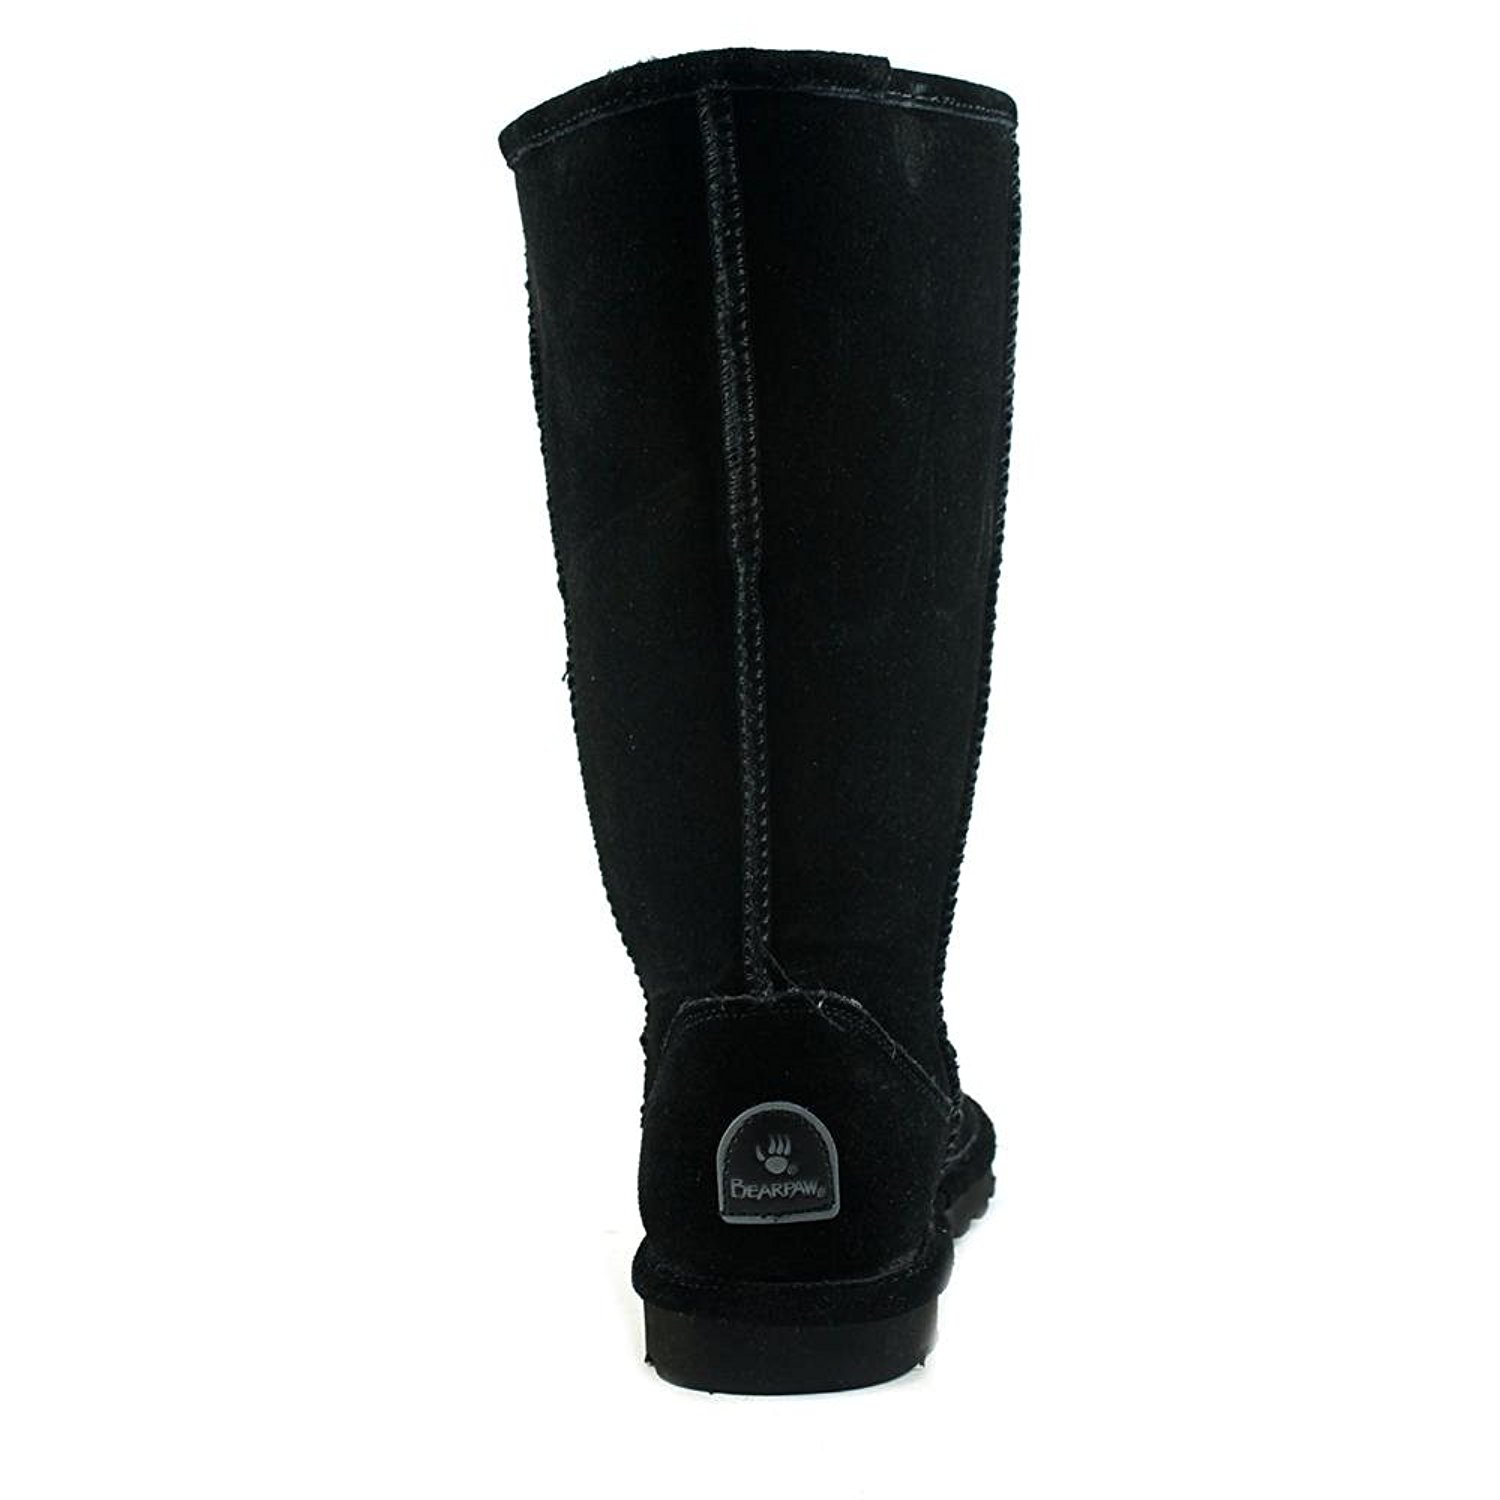 Bearpaw Damenschuhe Elle Stiefel Tall Closed Toe Mid-Calf Cold Weather Stiefel Elle 4a0d4d